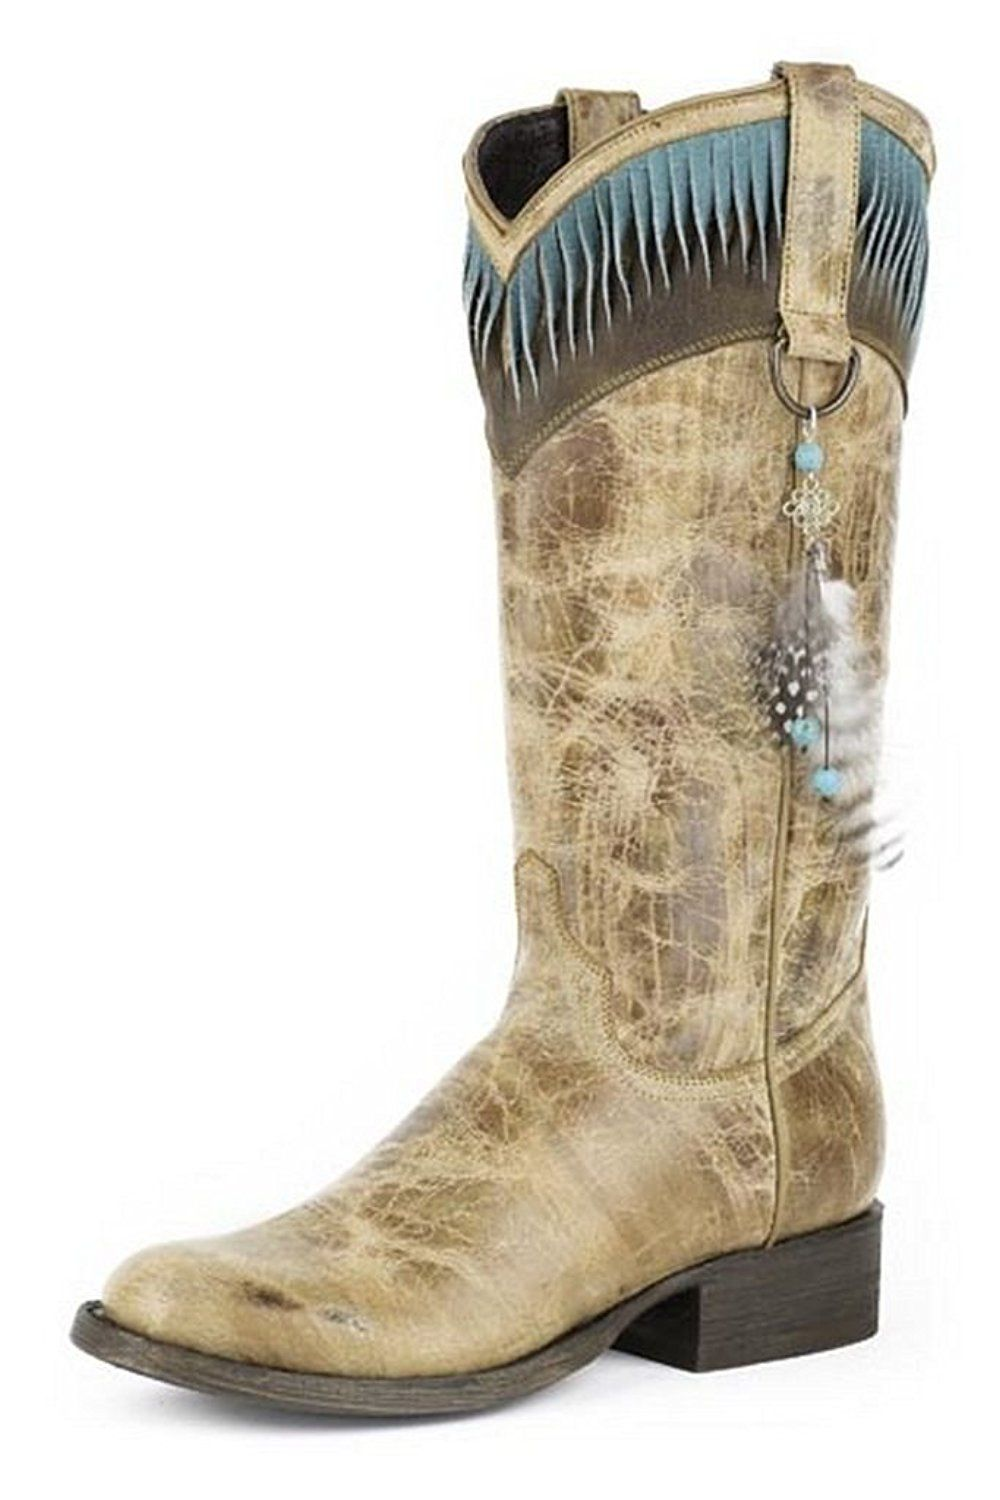 Stetson Women's Kai Feather Cowgirl Boot Round Toe - 12-021-7601-0565